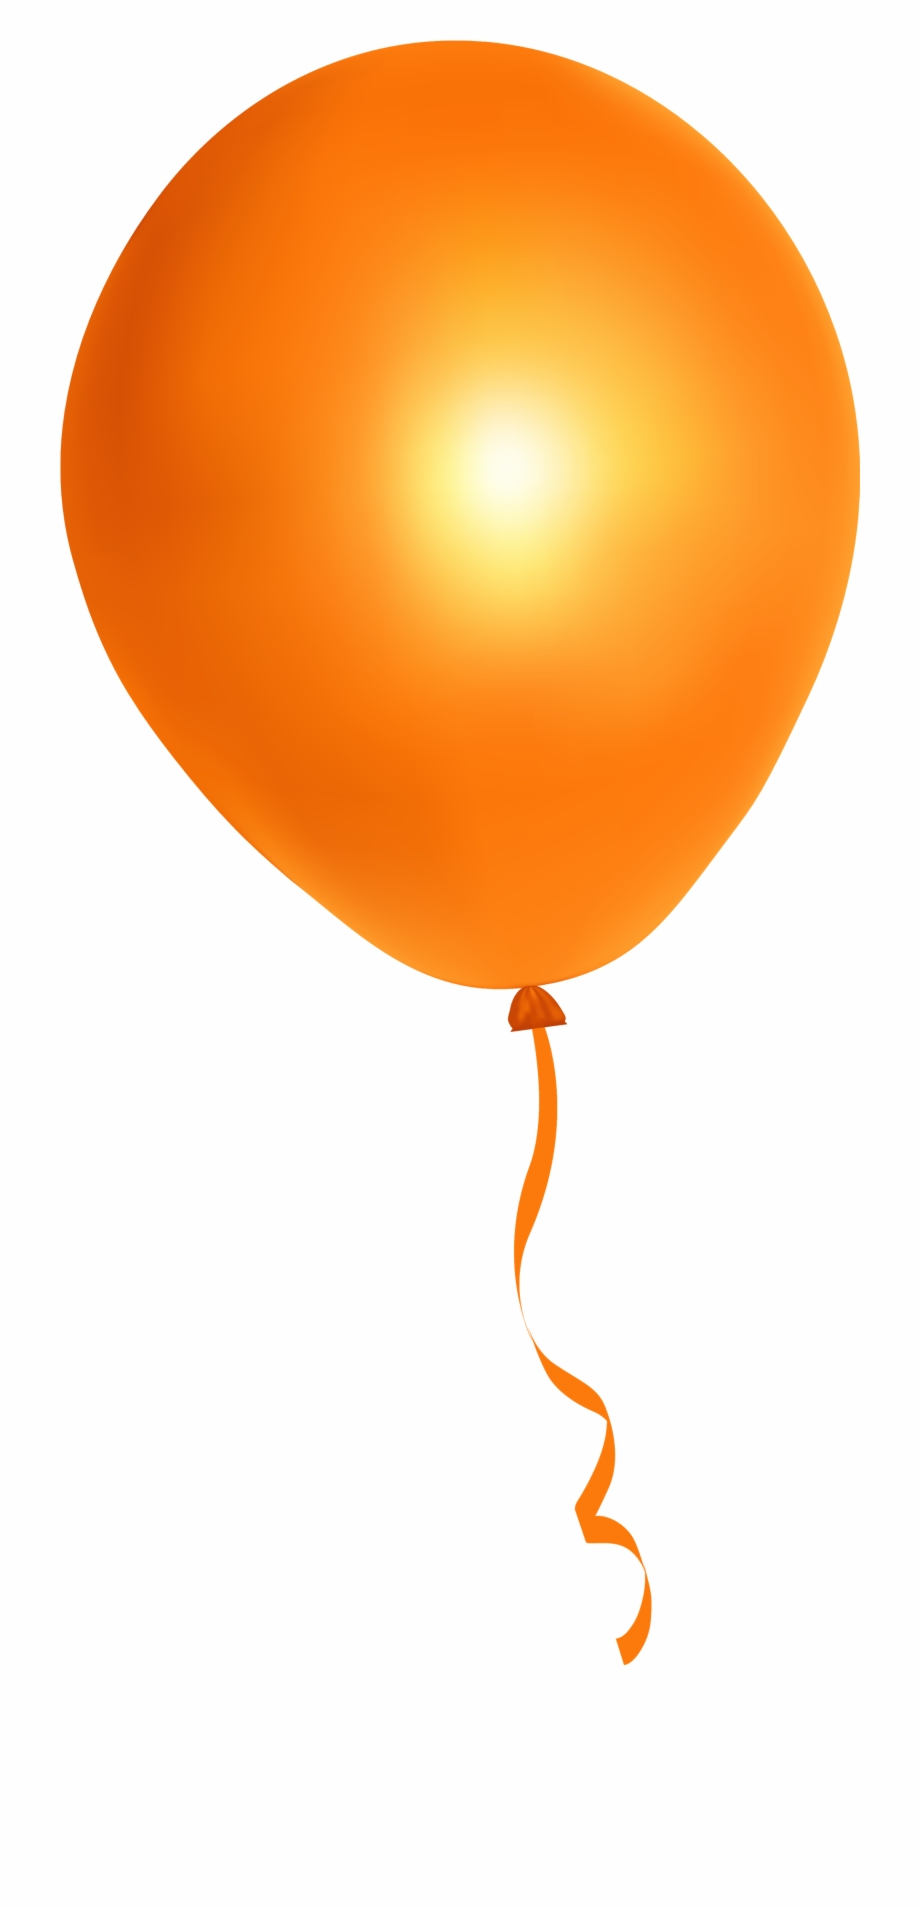 Balloon Png Transparent Balloon Images.